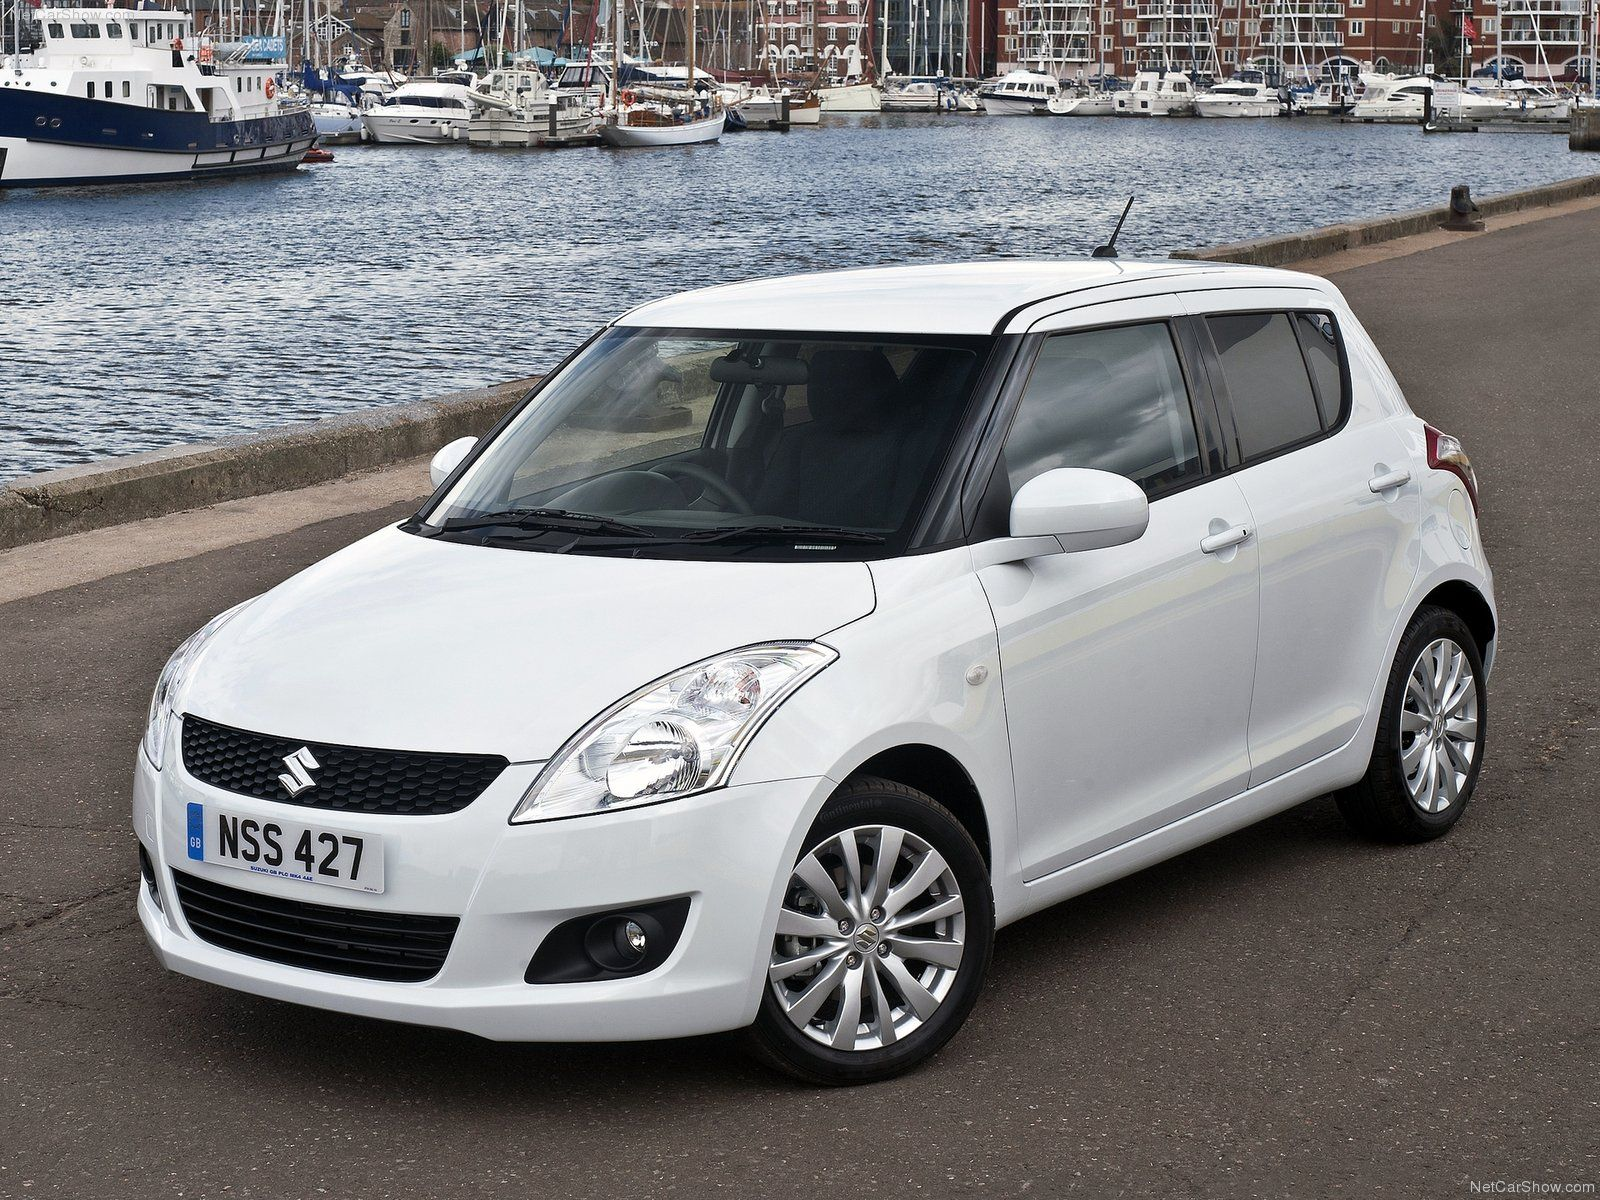 Suzuki swift automobile that is perfect for city driving with a length of 3850